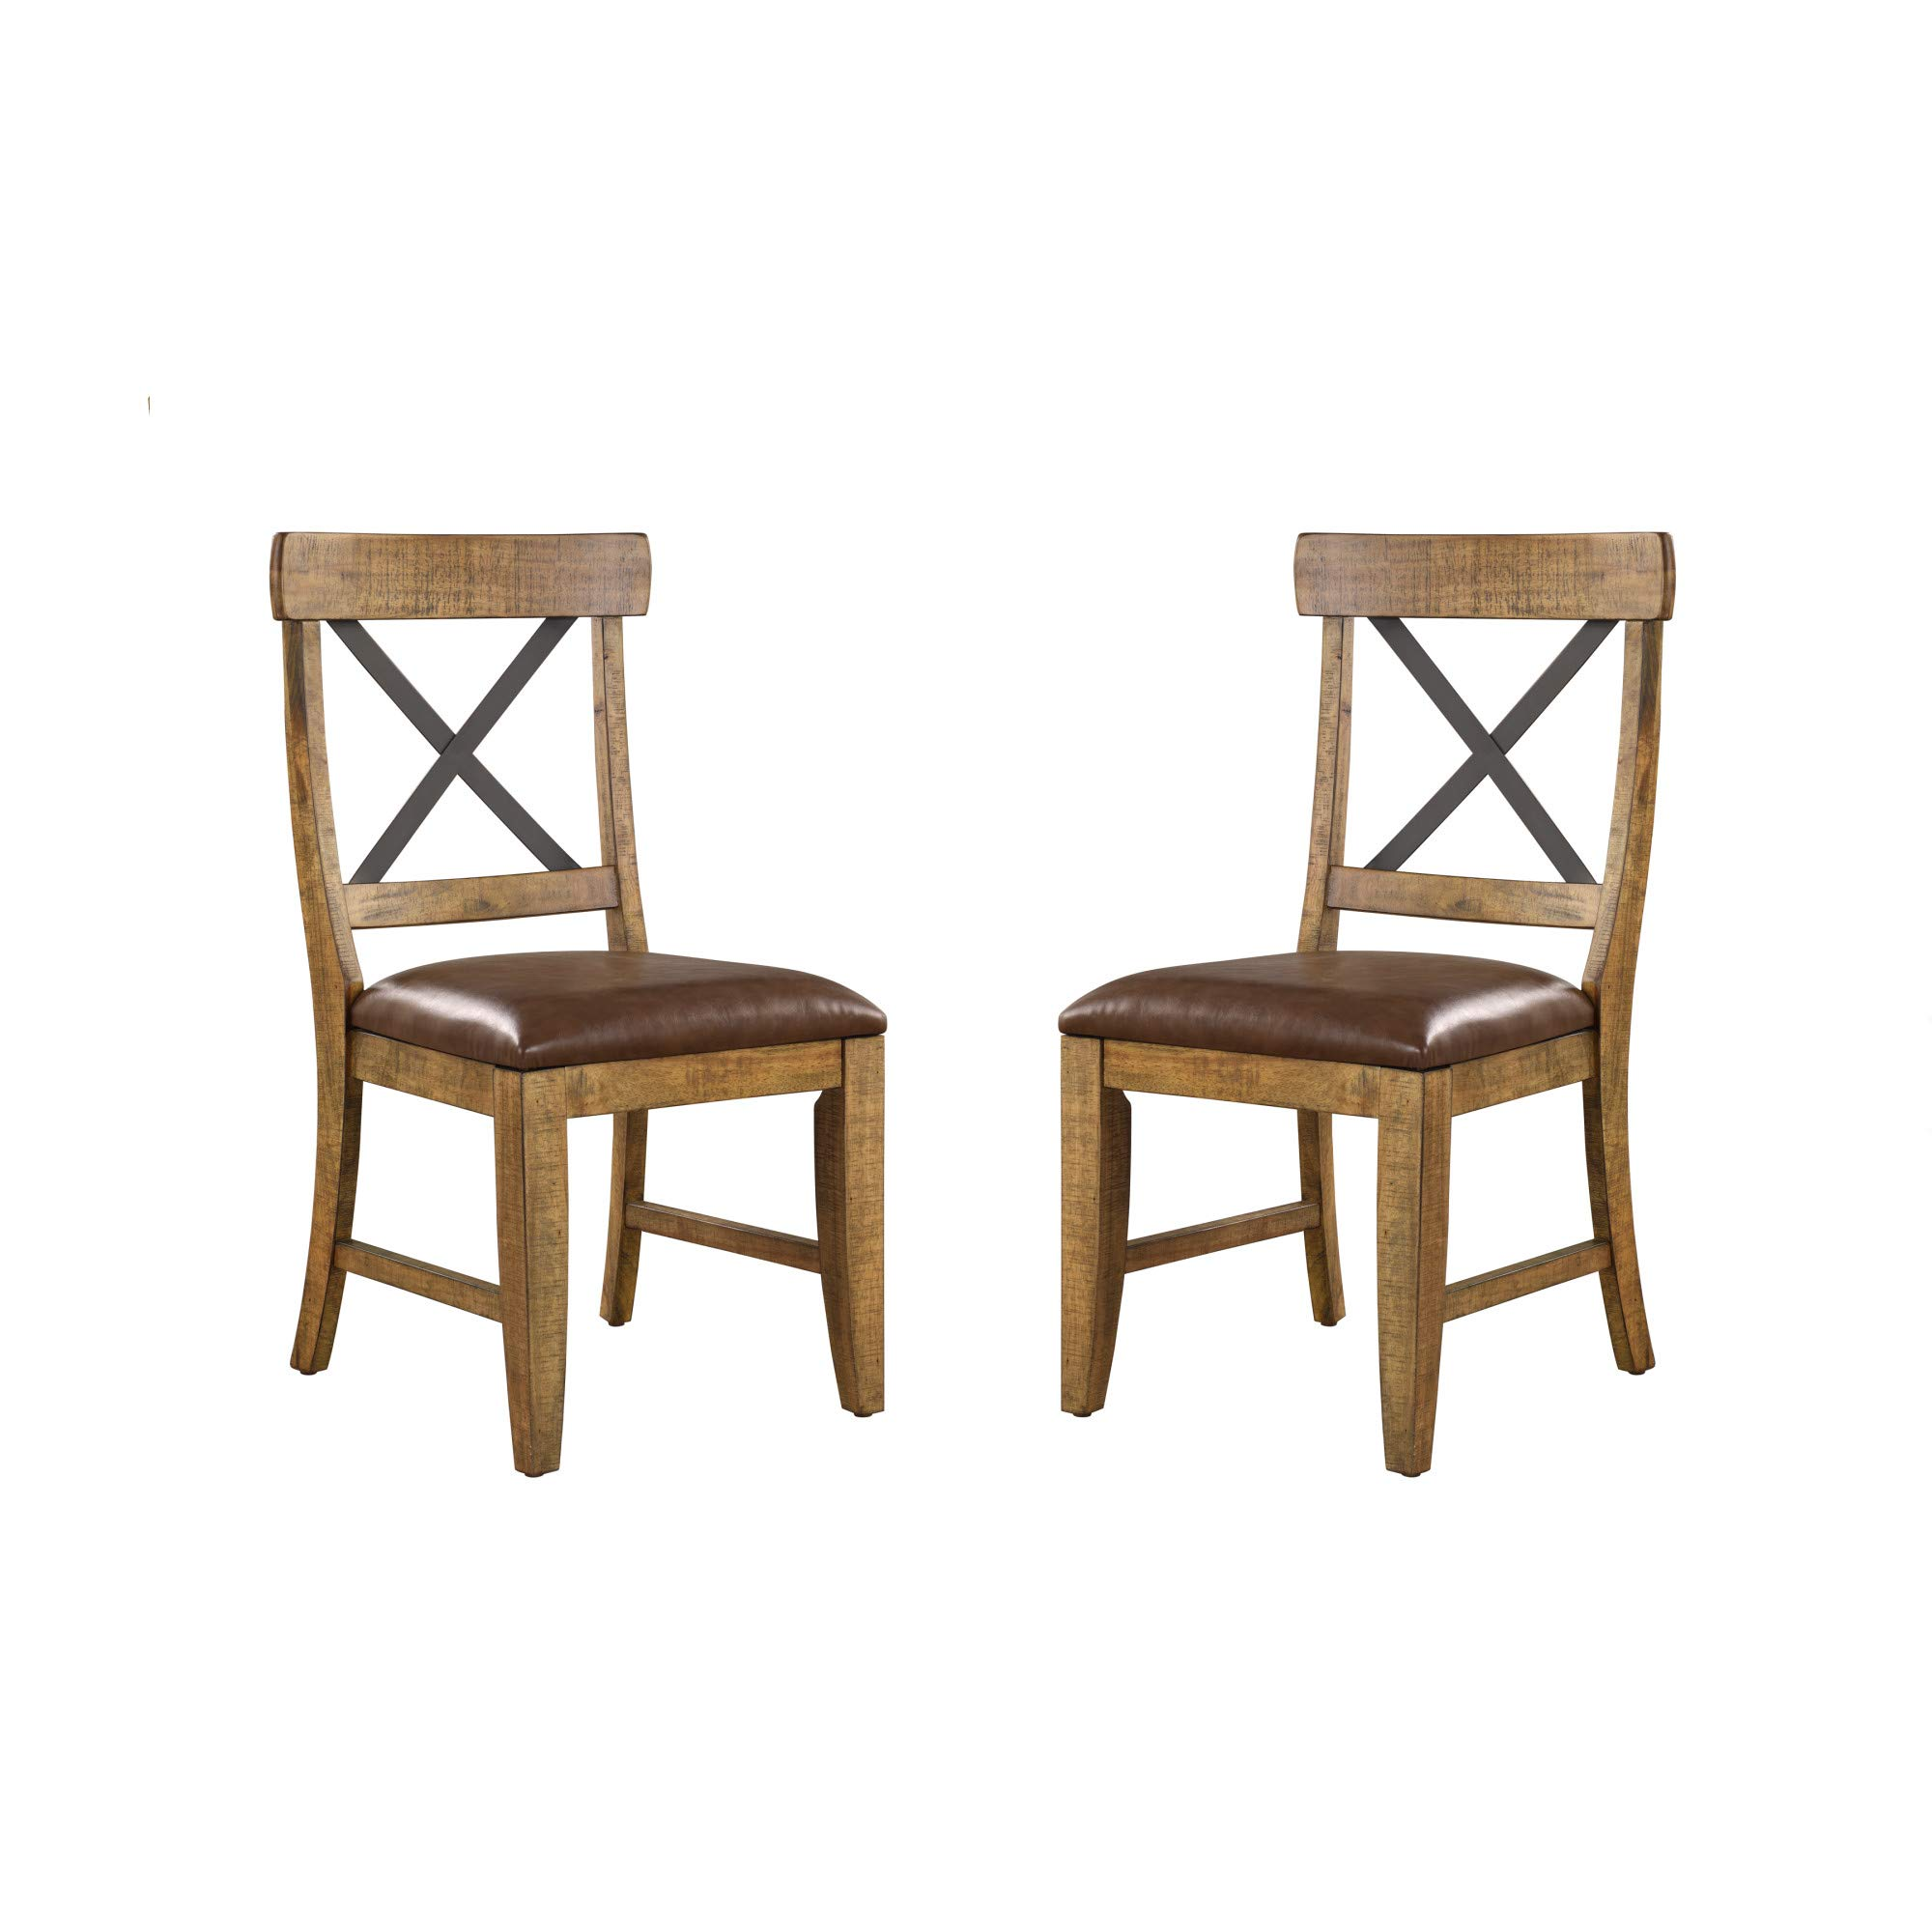 Joey Dining Chair in Gingersnap with Faux Leather Seat And Metal Cross Back, Set of Two, by Artum Hill